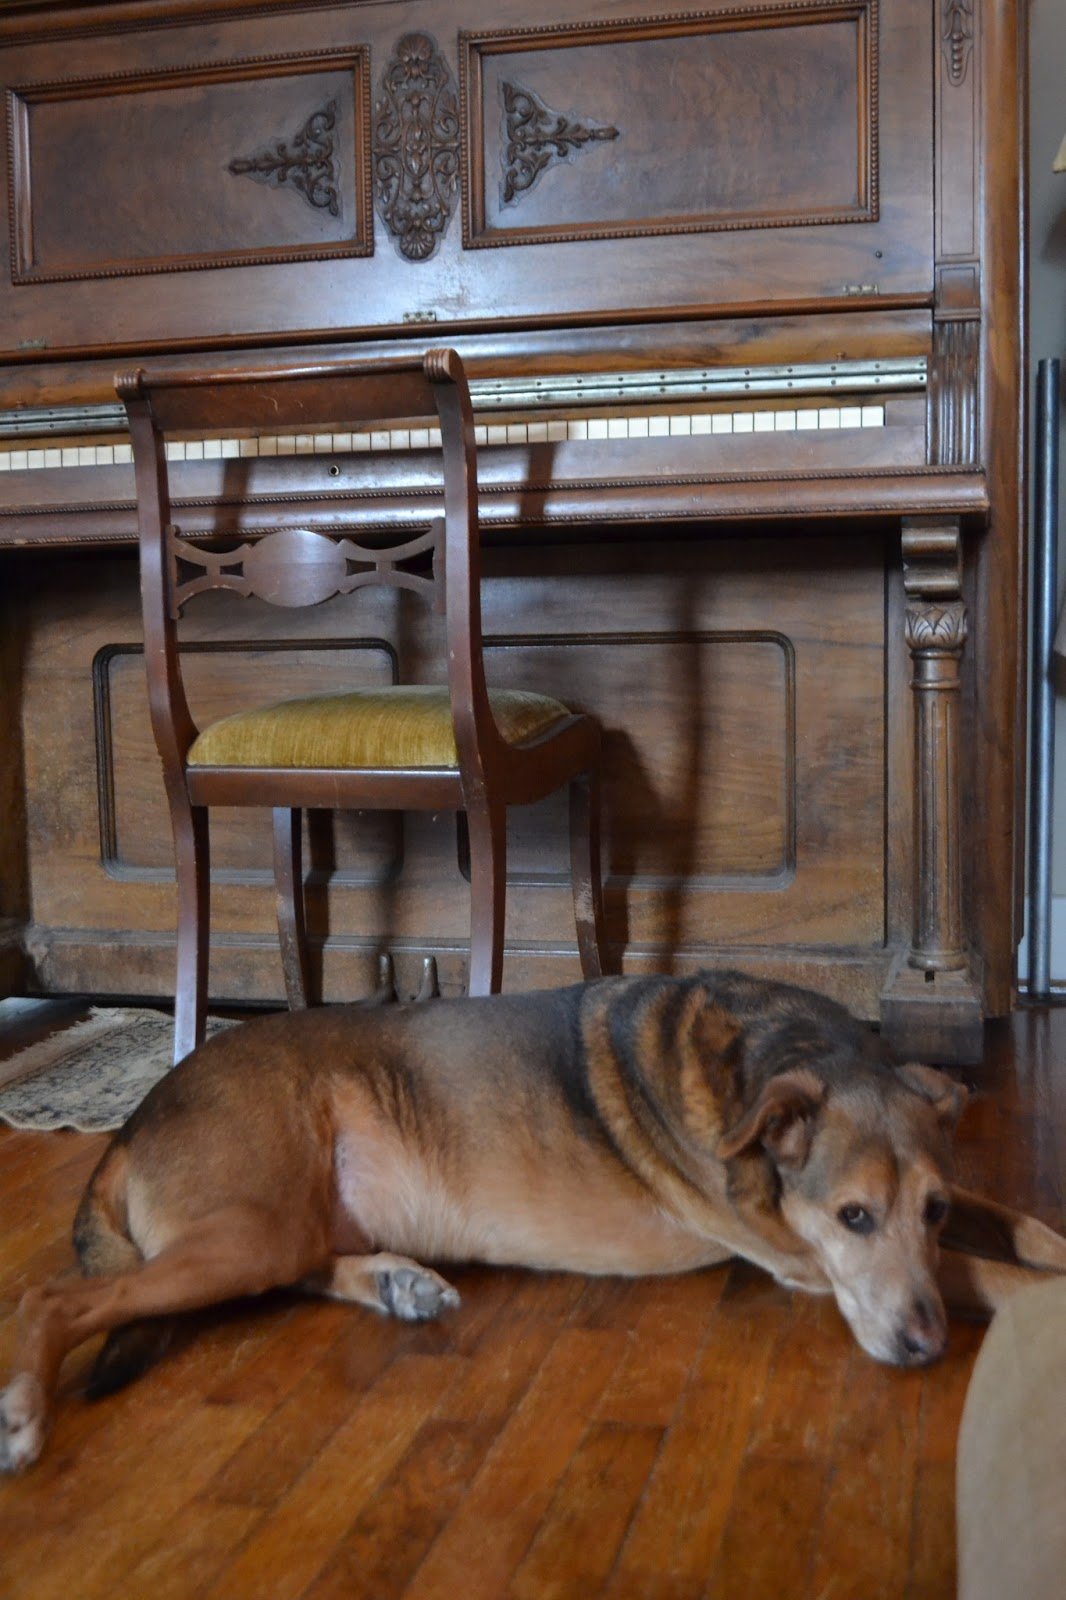 dog and antique piano